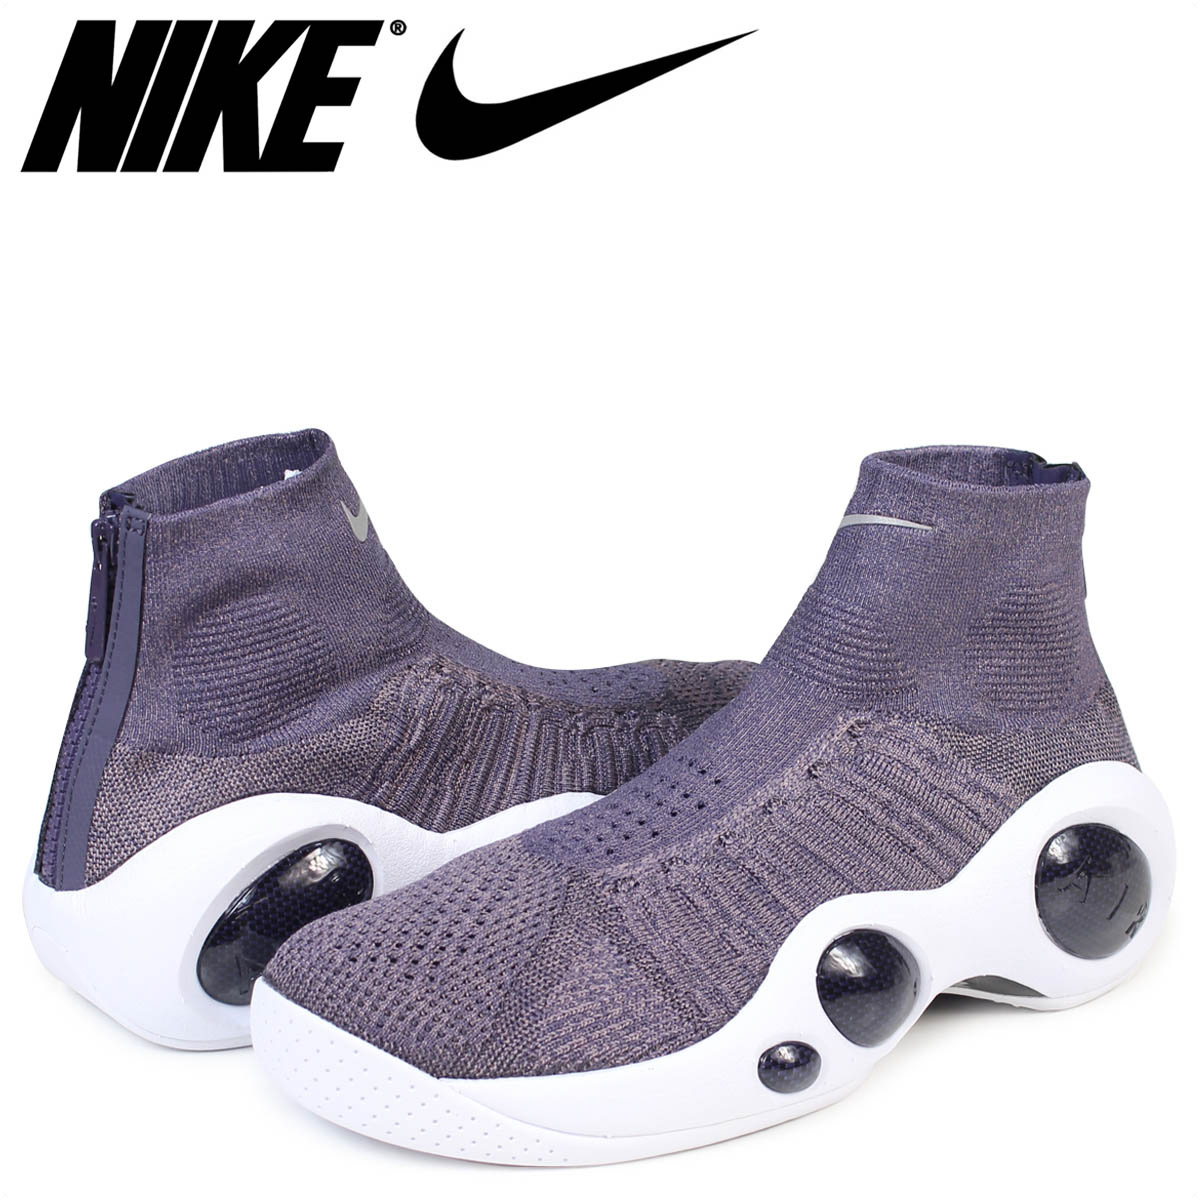 1b1684e8a304 ALLSPORTS  NIKE Nike flight VONA Fido sneakers FLIGHT BONAFIDE ...